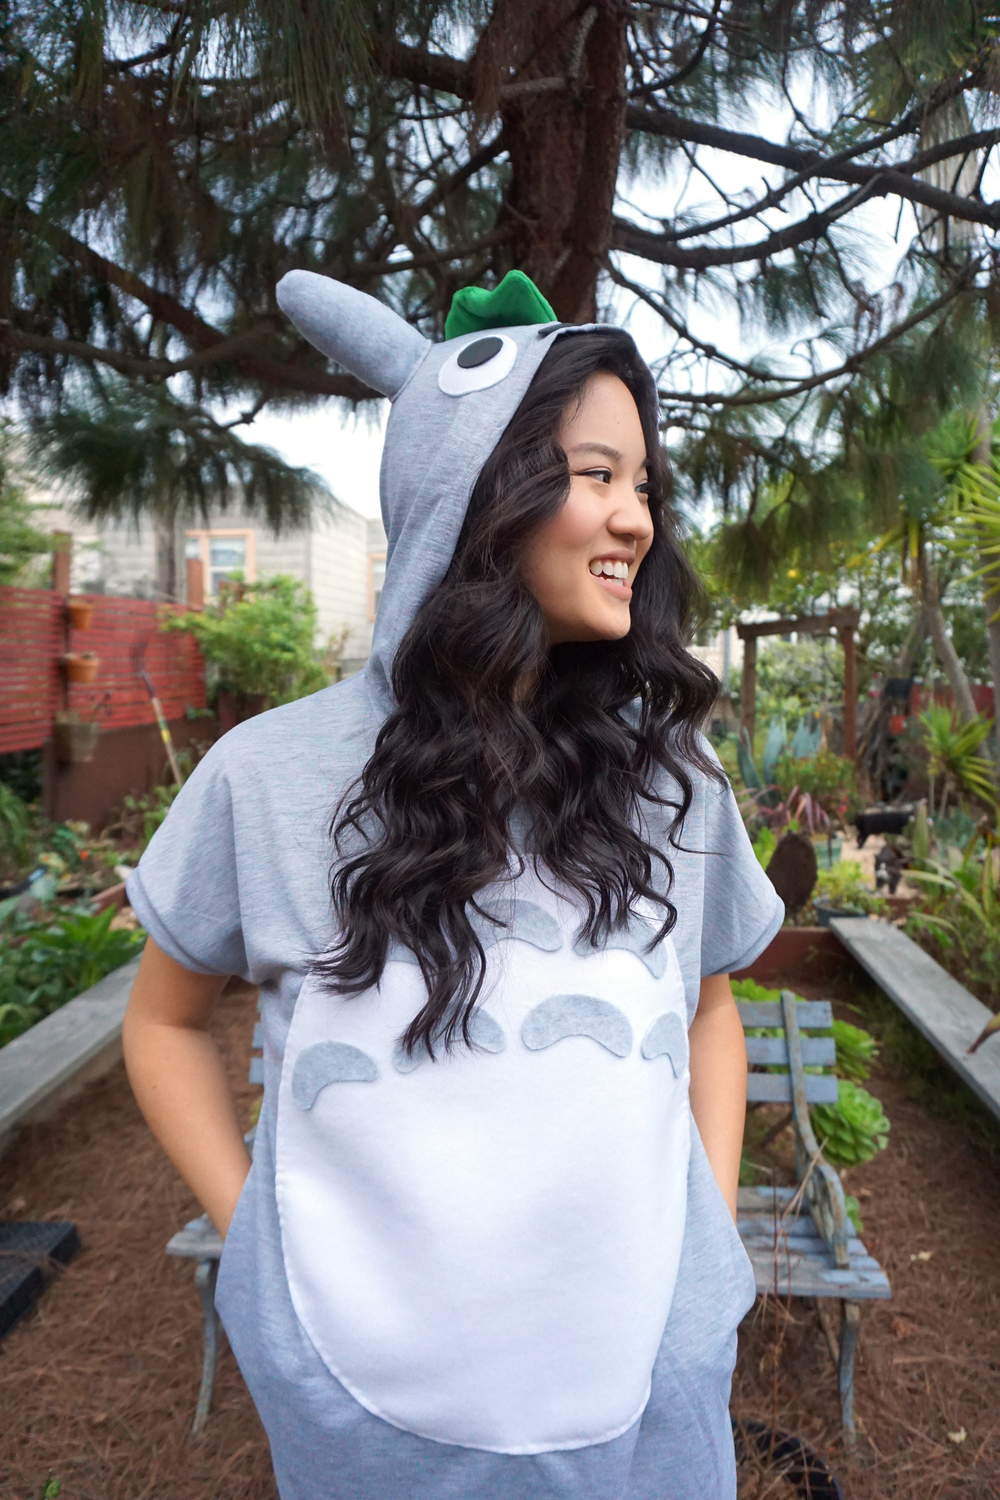 DIY Totoro Halloween Costume Tutorial by Broke and Cooking - www.brokeandcooking.com